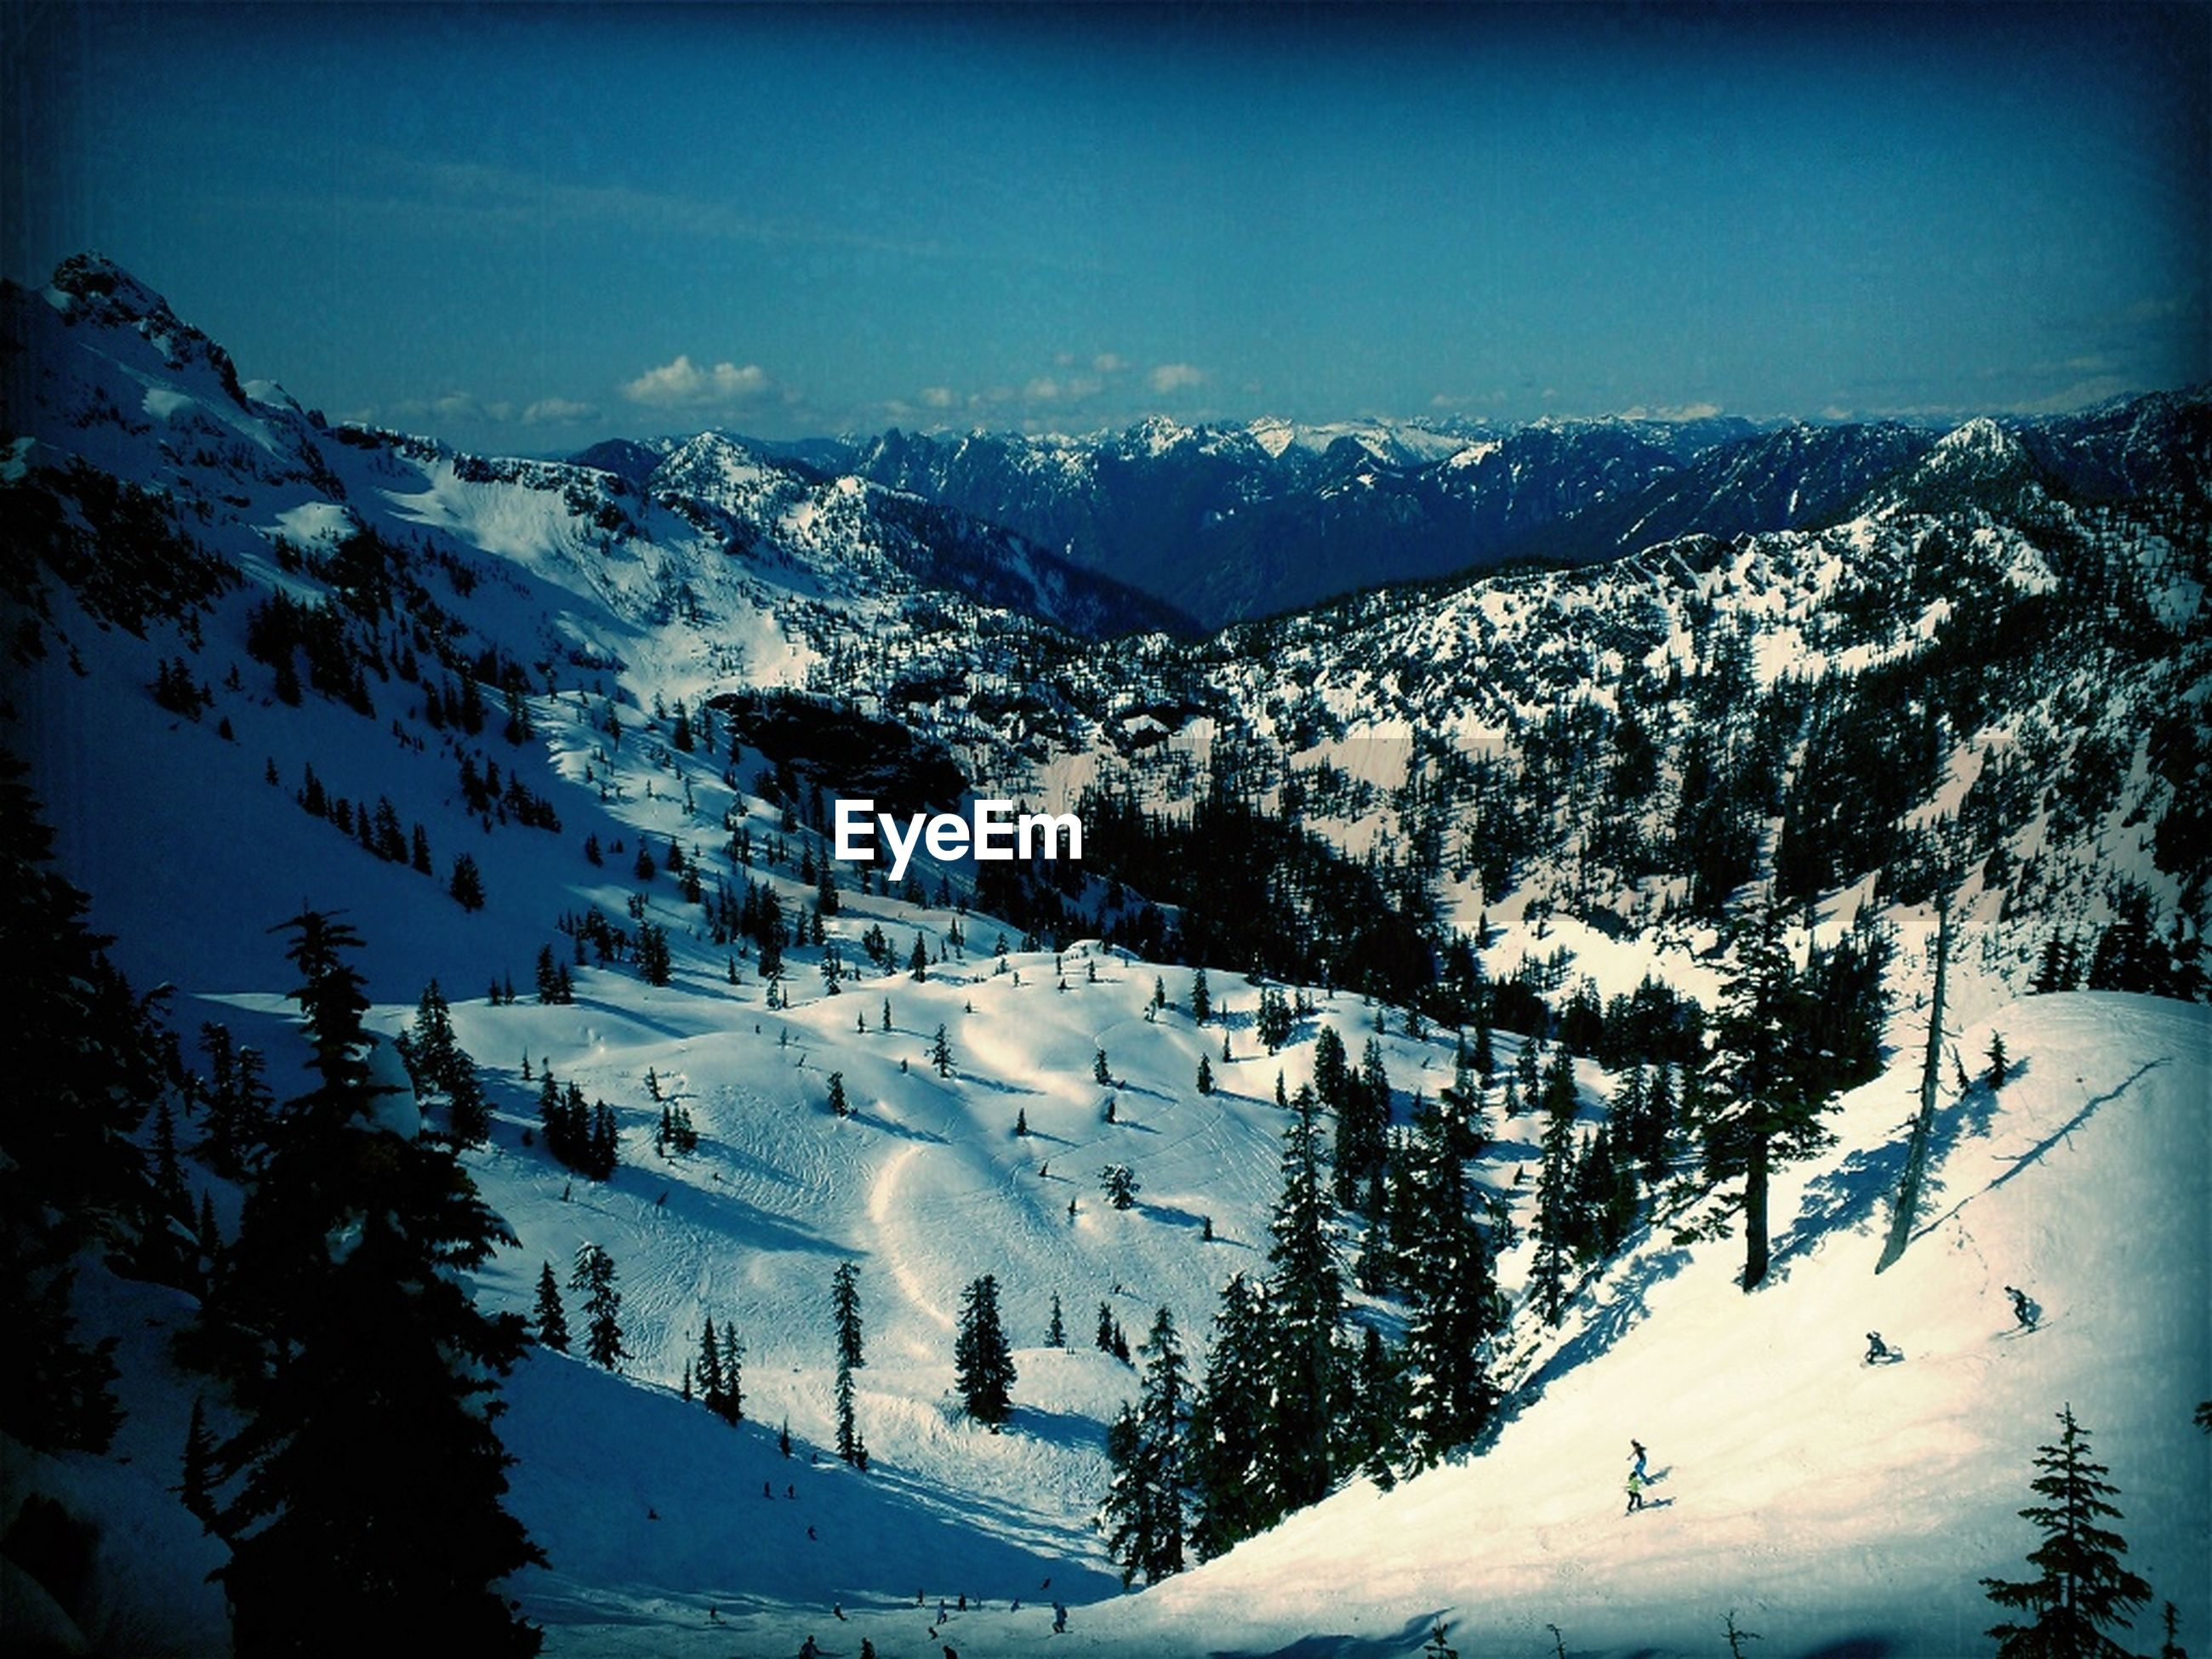 snow, winter, cold temperature, mountain, season, weather, scenics, tranquil scene, beauty in nature, tranquility, mountain range, landscape, snowcapped mountain, nature, covering, clear sky, high angle view, tree, snowcapped, frozen